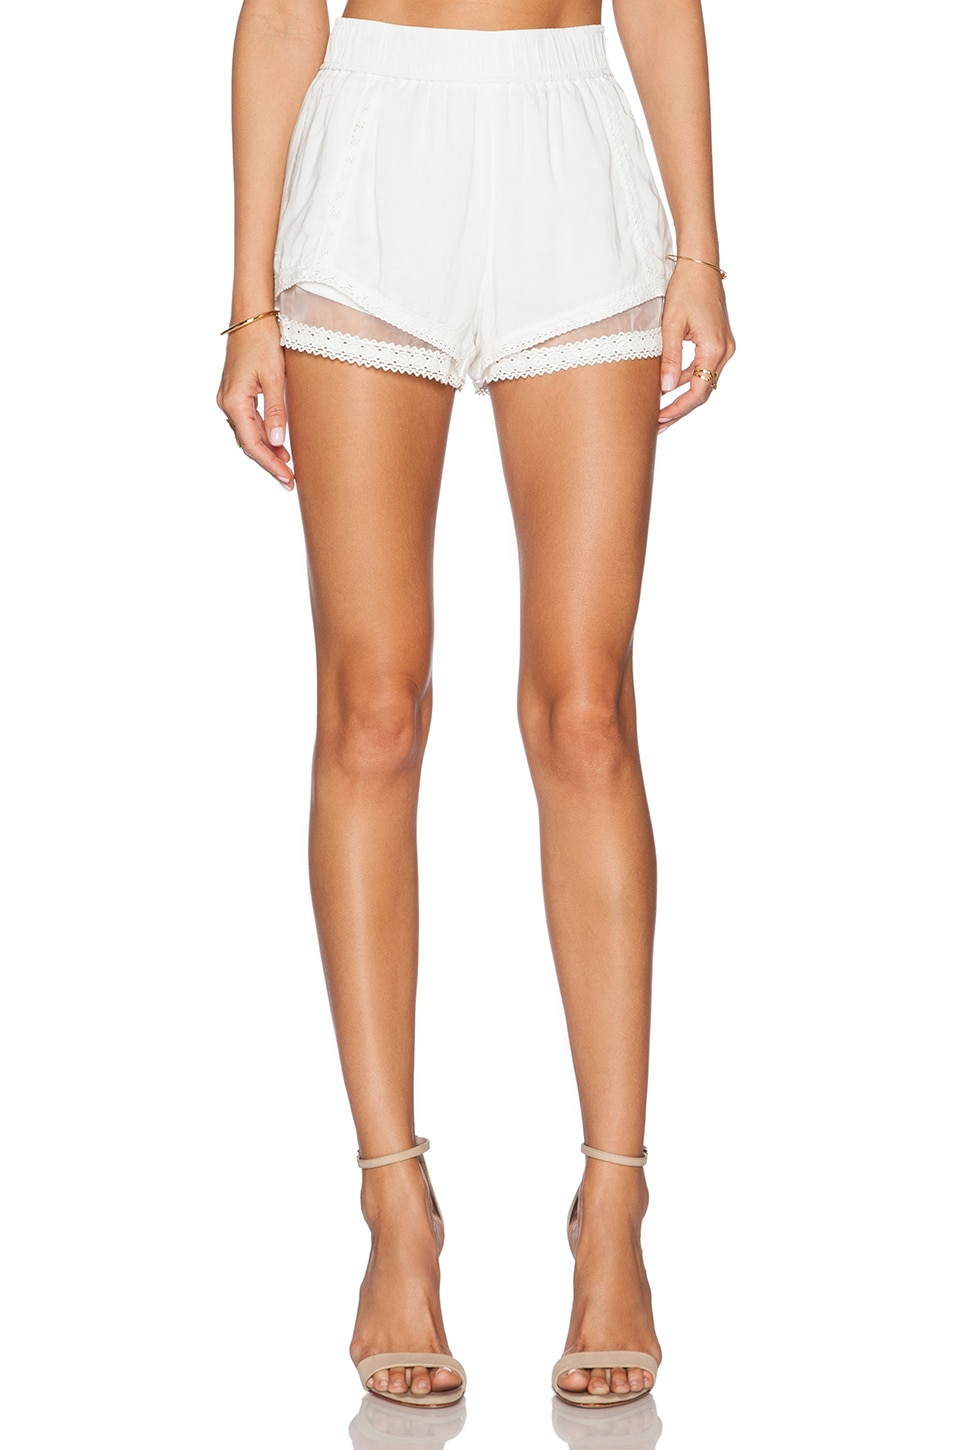 J.O.A. Lace Trim Short in Off White